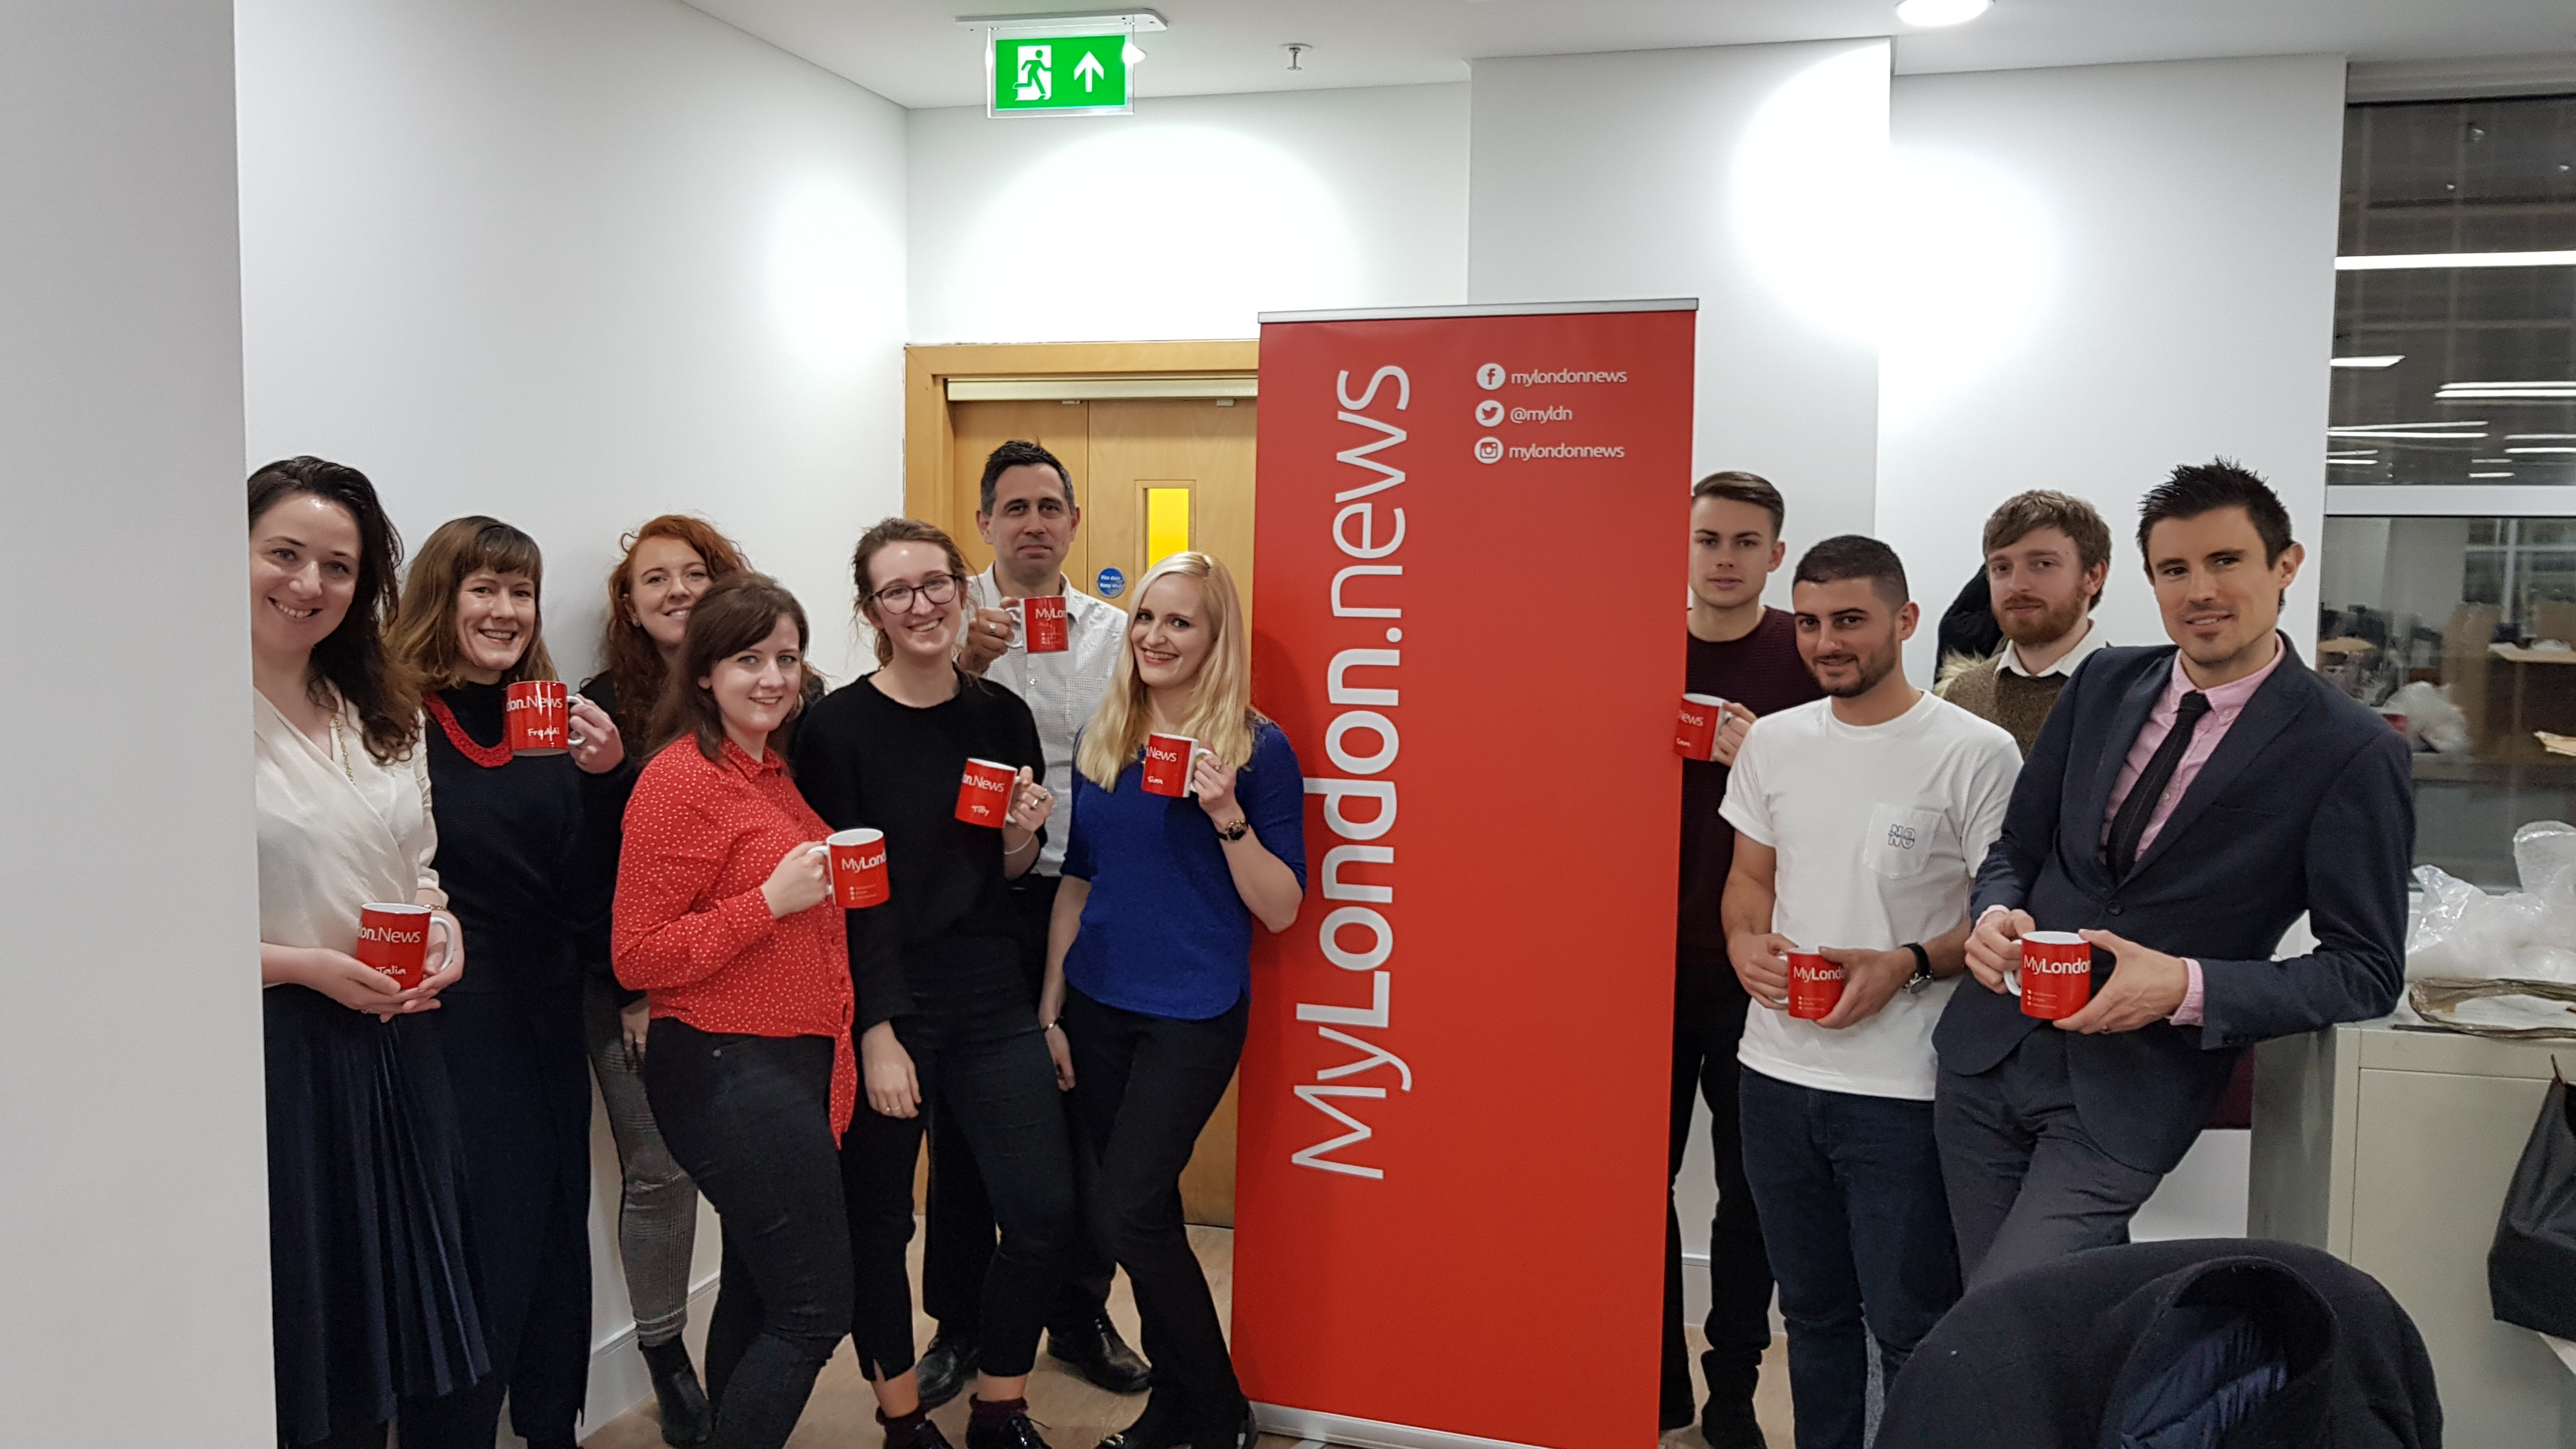 The MyLondon news team after moving to a new office in Lower Thames Street, London